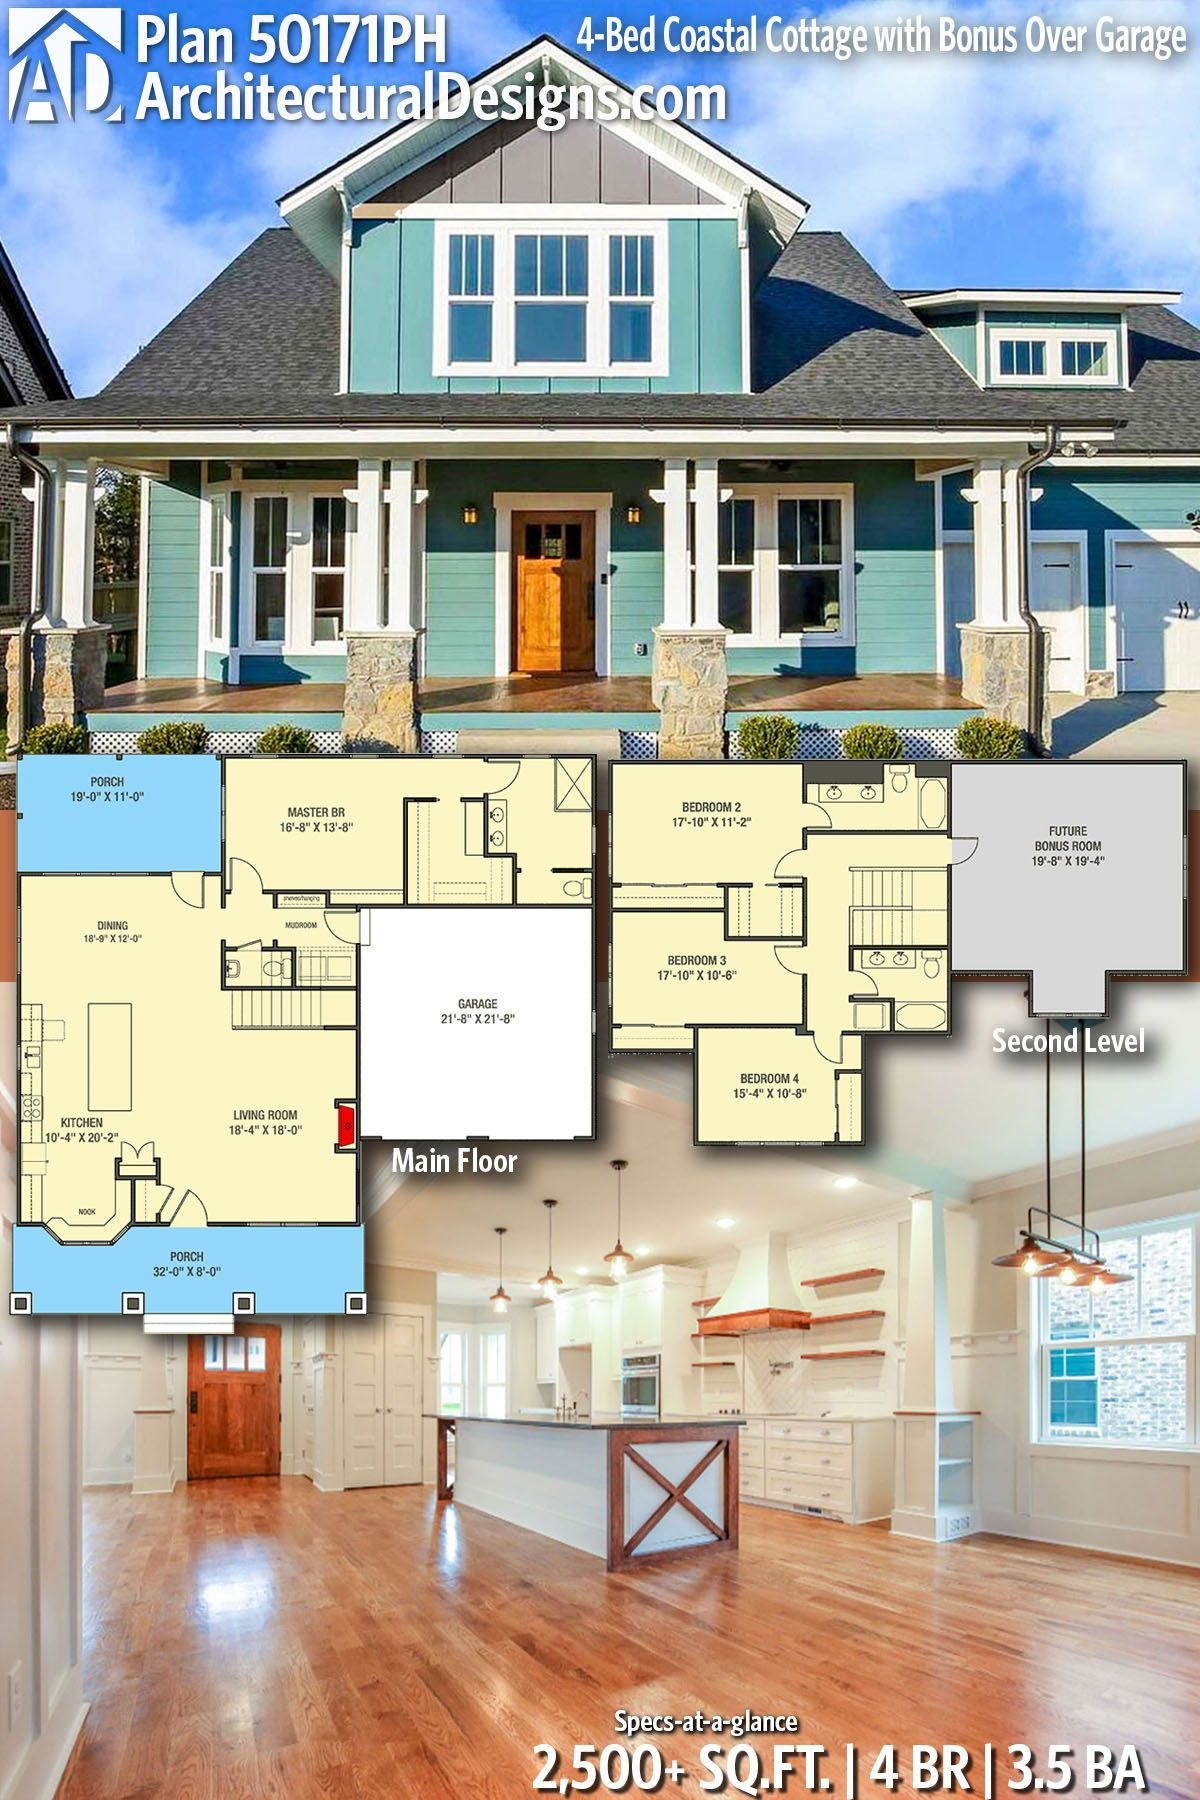 Plan 50171ph 4 Bed Coastal Cottage With Bonus Over Garage New House Plans House Styles Craftsman House